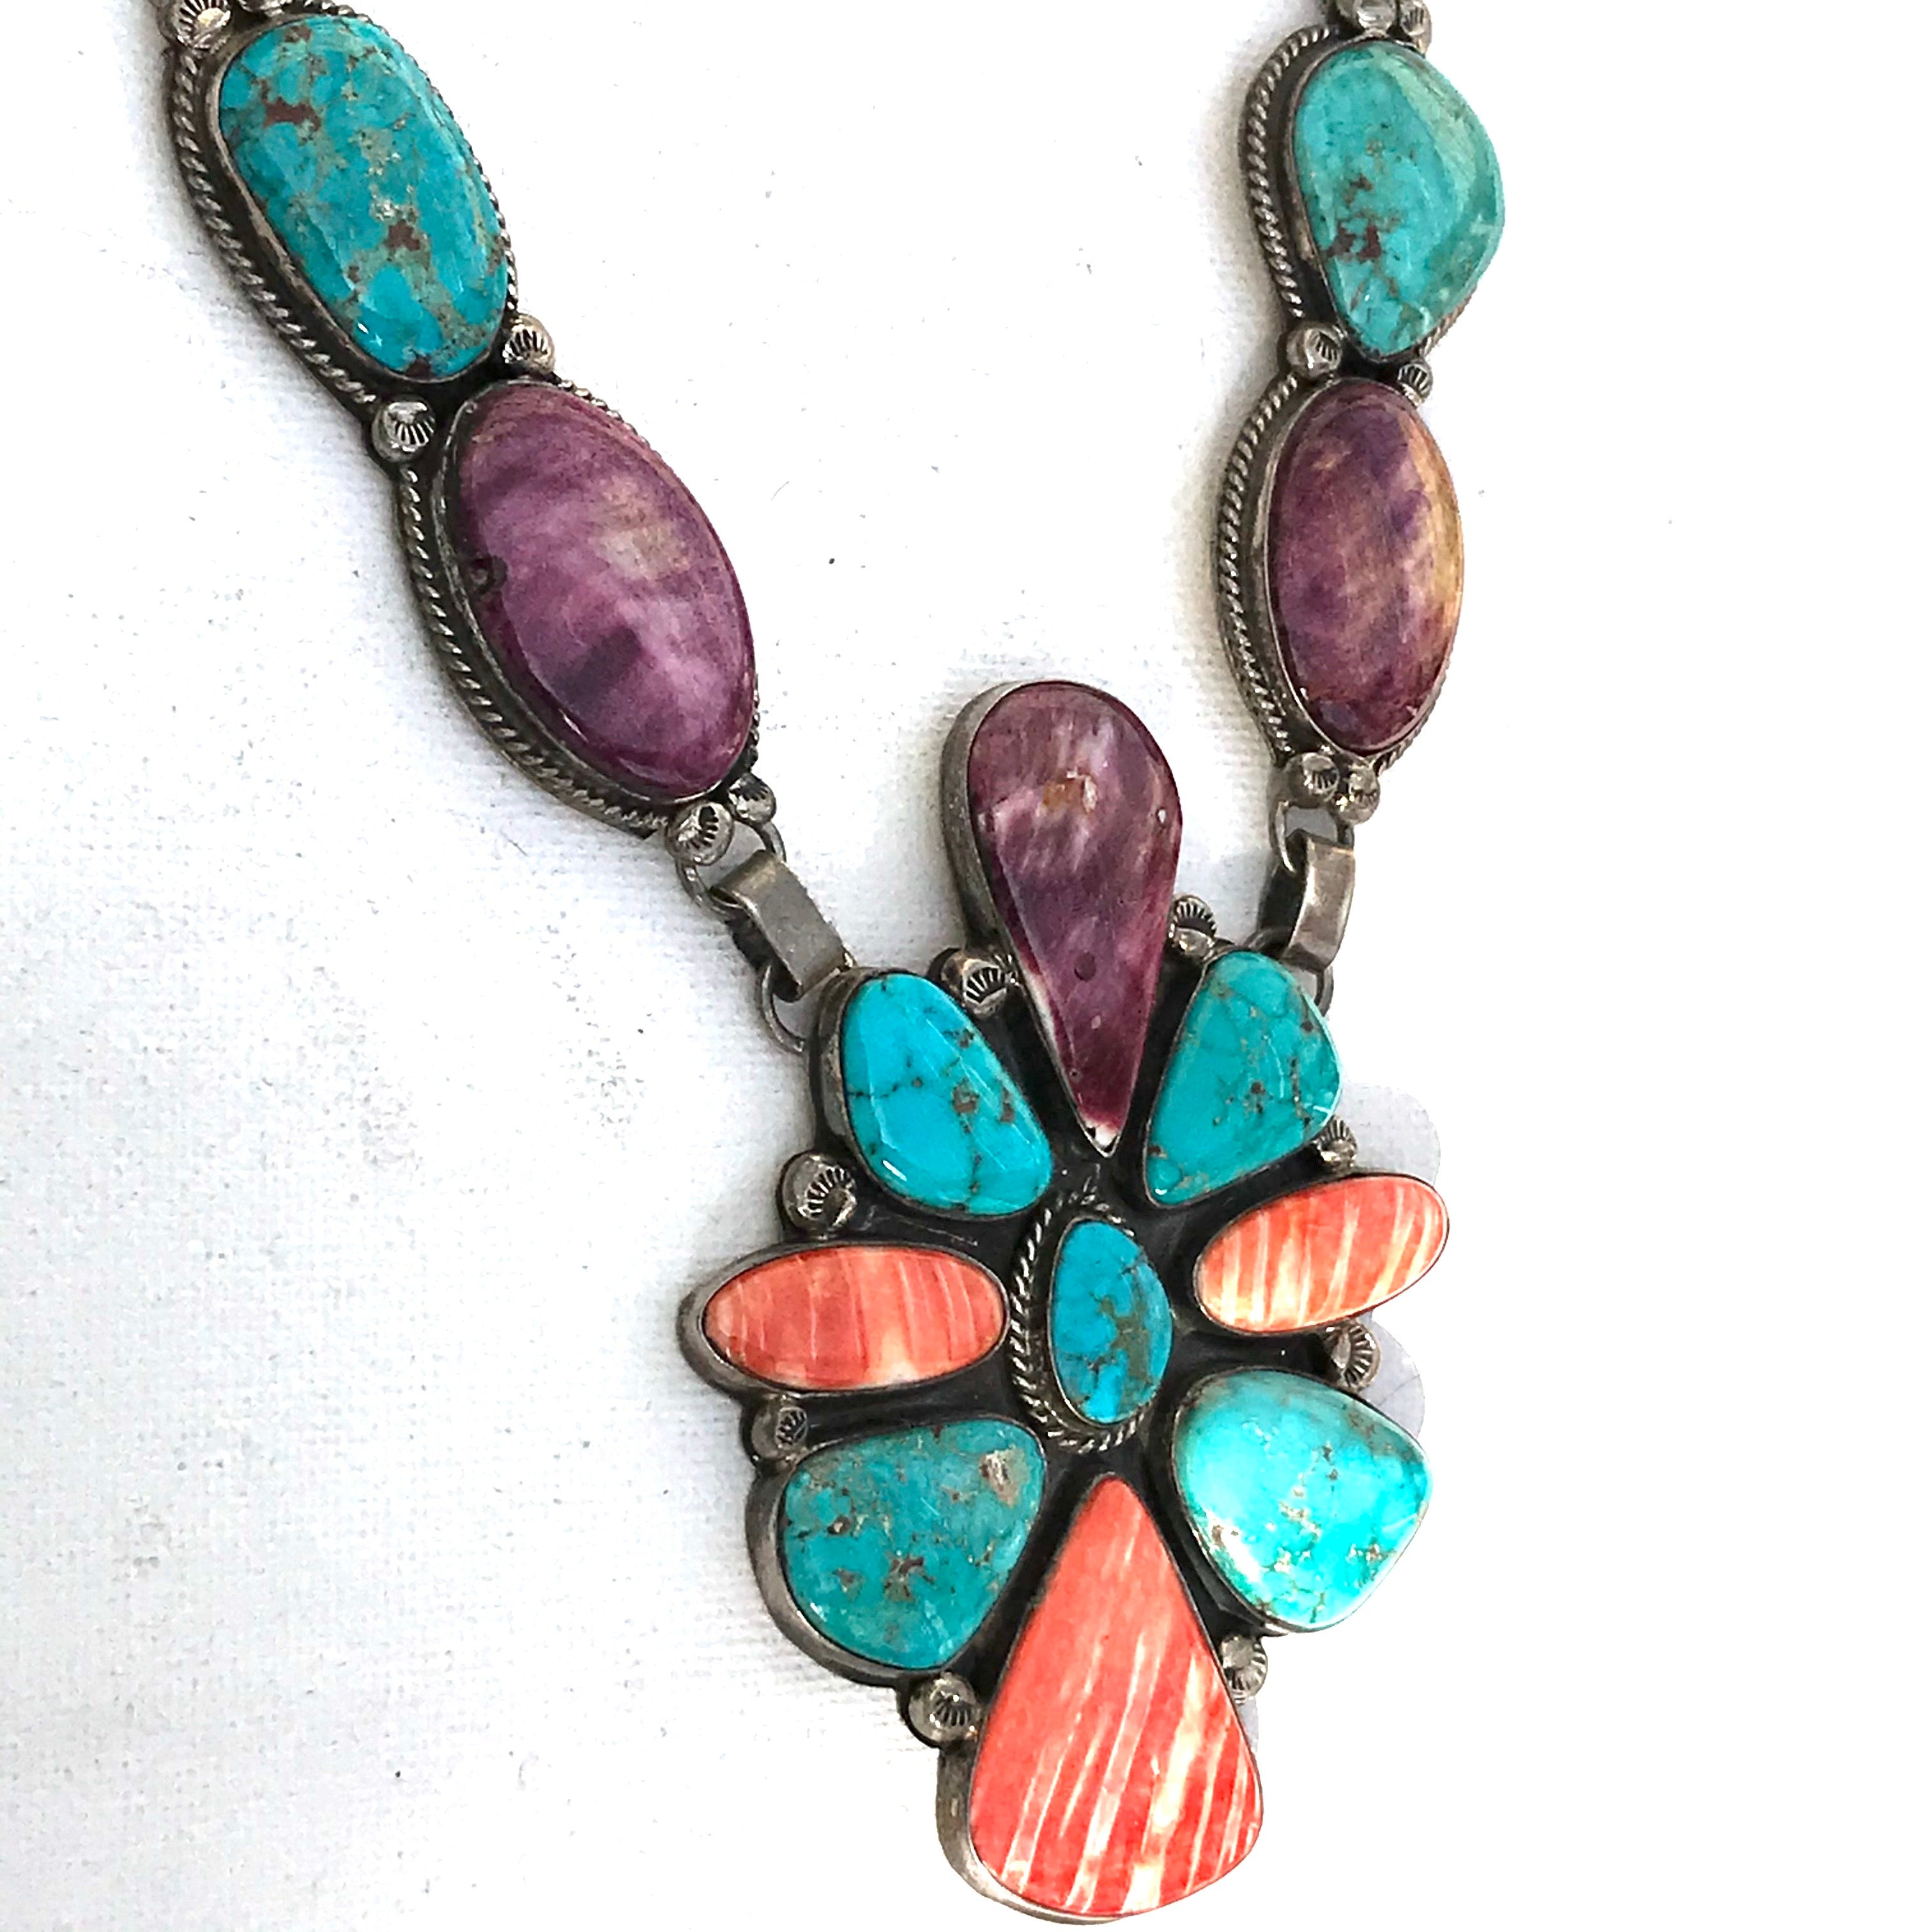 Stunning Navajo spiny turquoise necklace